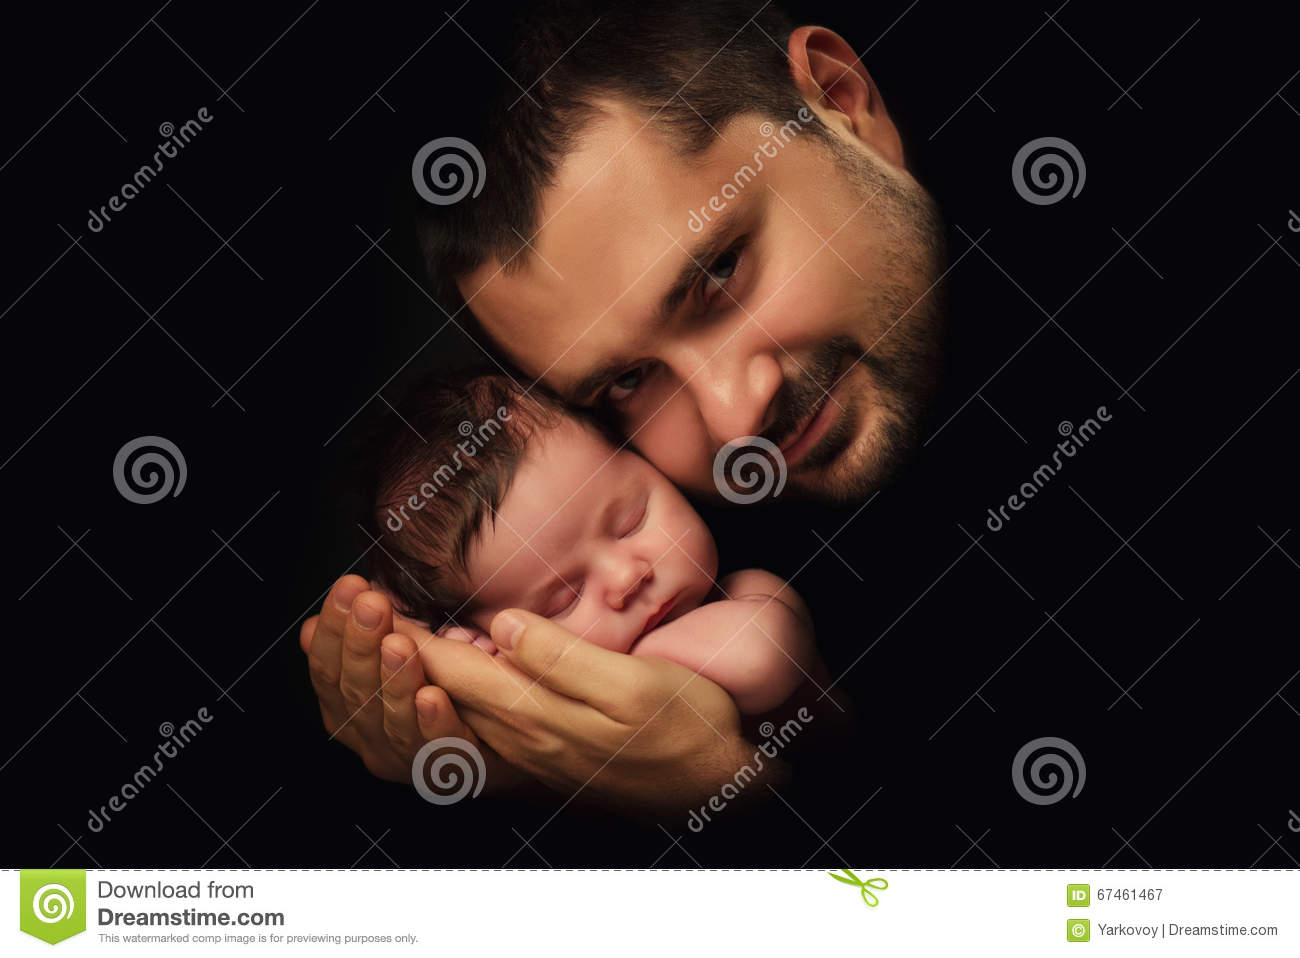 Daddy hugs his newborn baby. Father s love. Close-up portrait on a black background